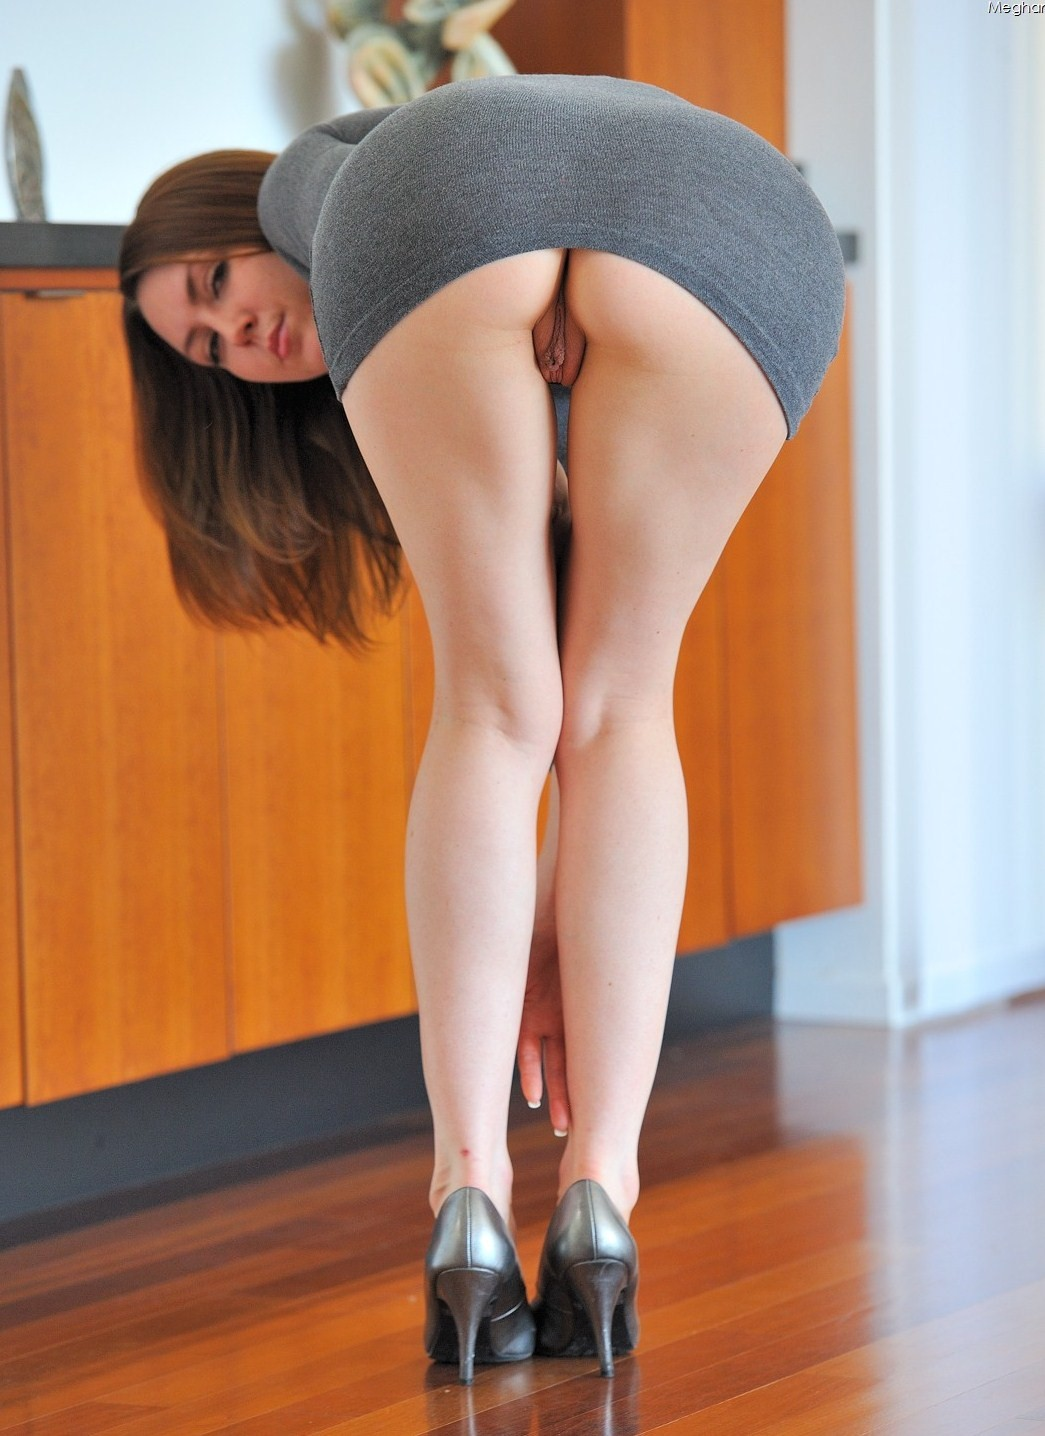 Secretary bent over skirt no panties